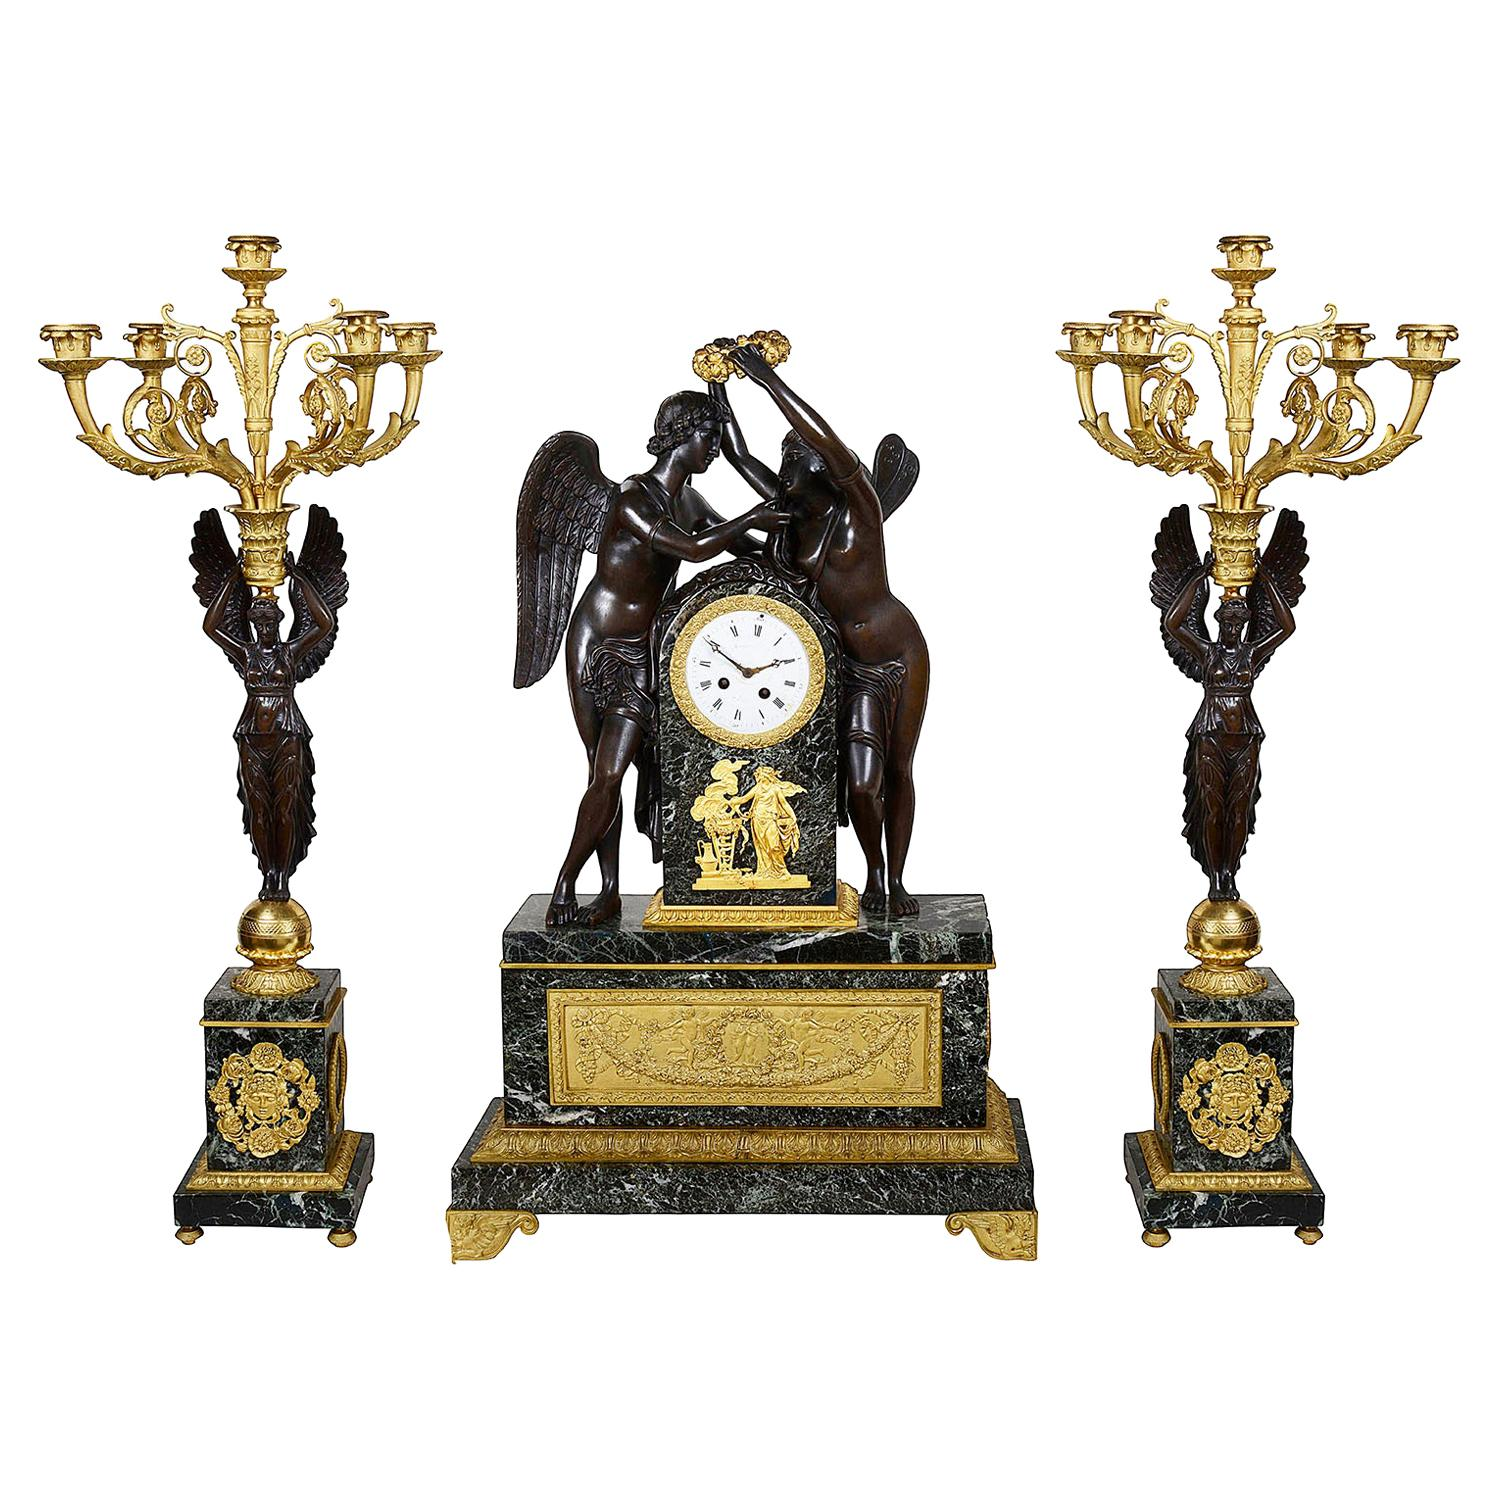 Large 19th Century French Empire Style Clock Set